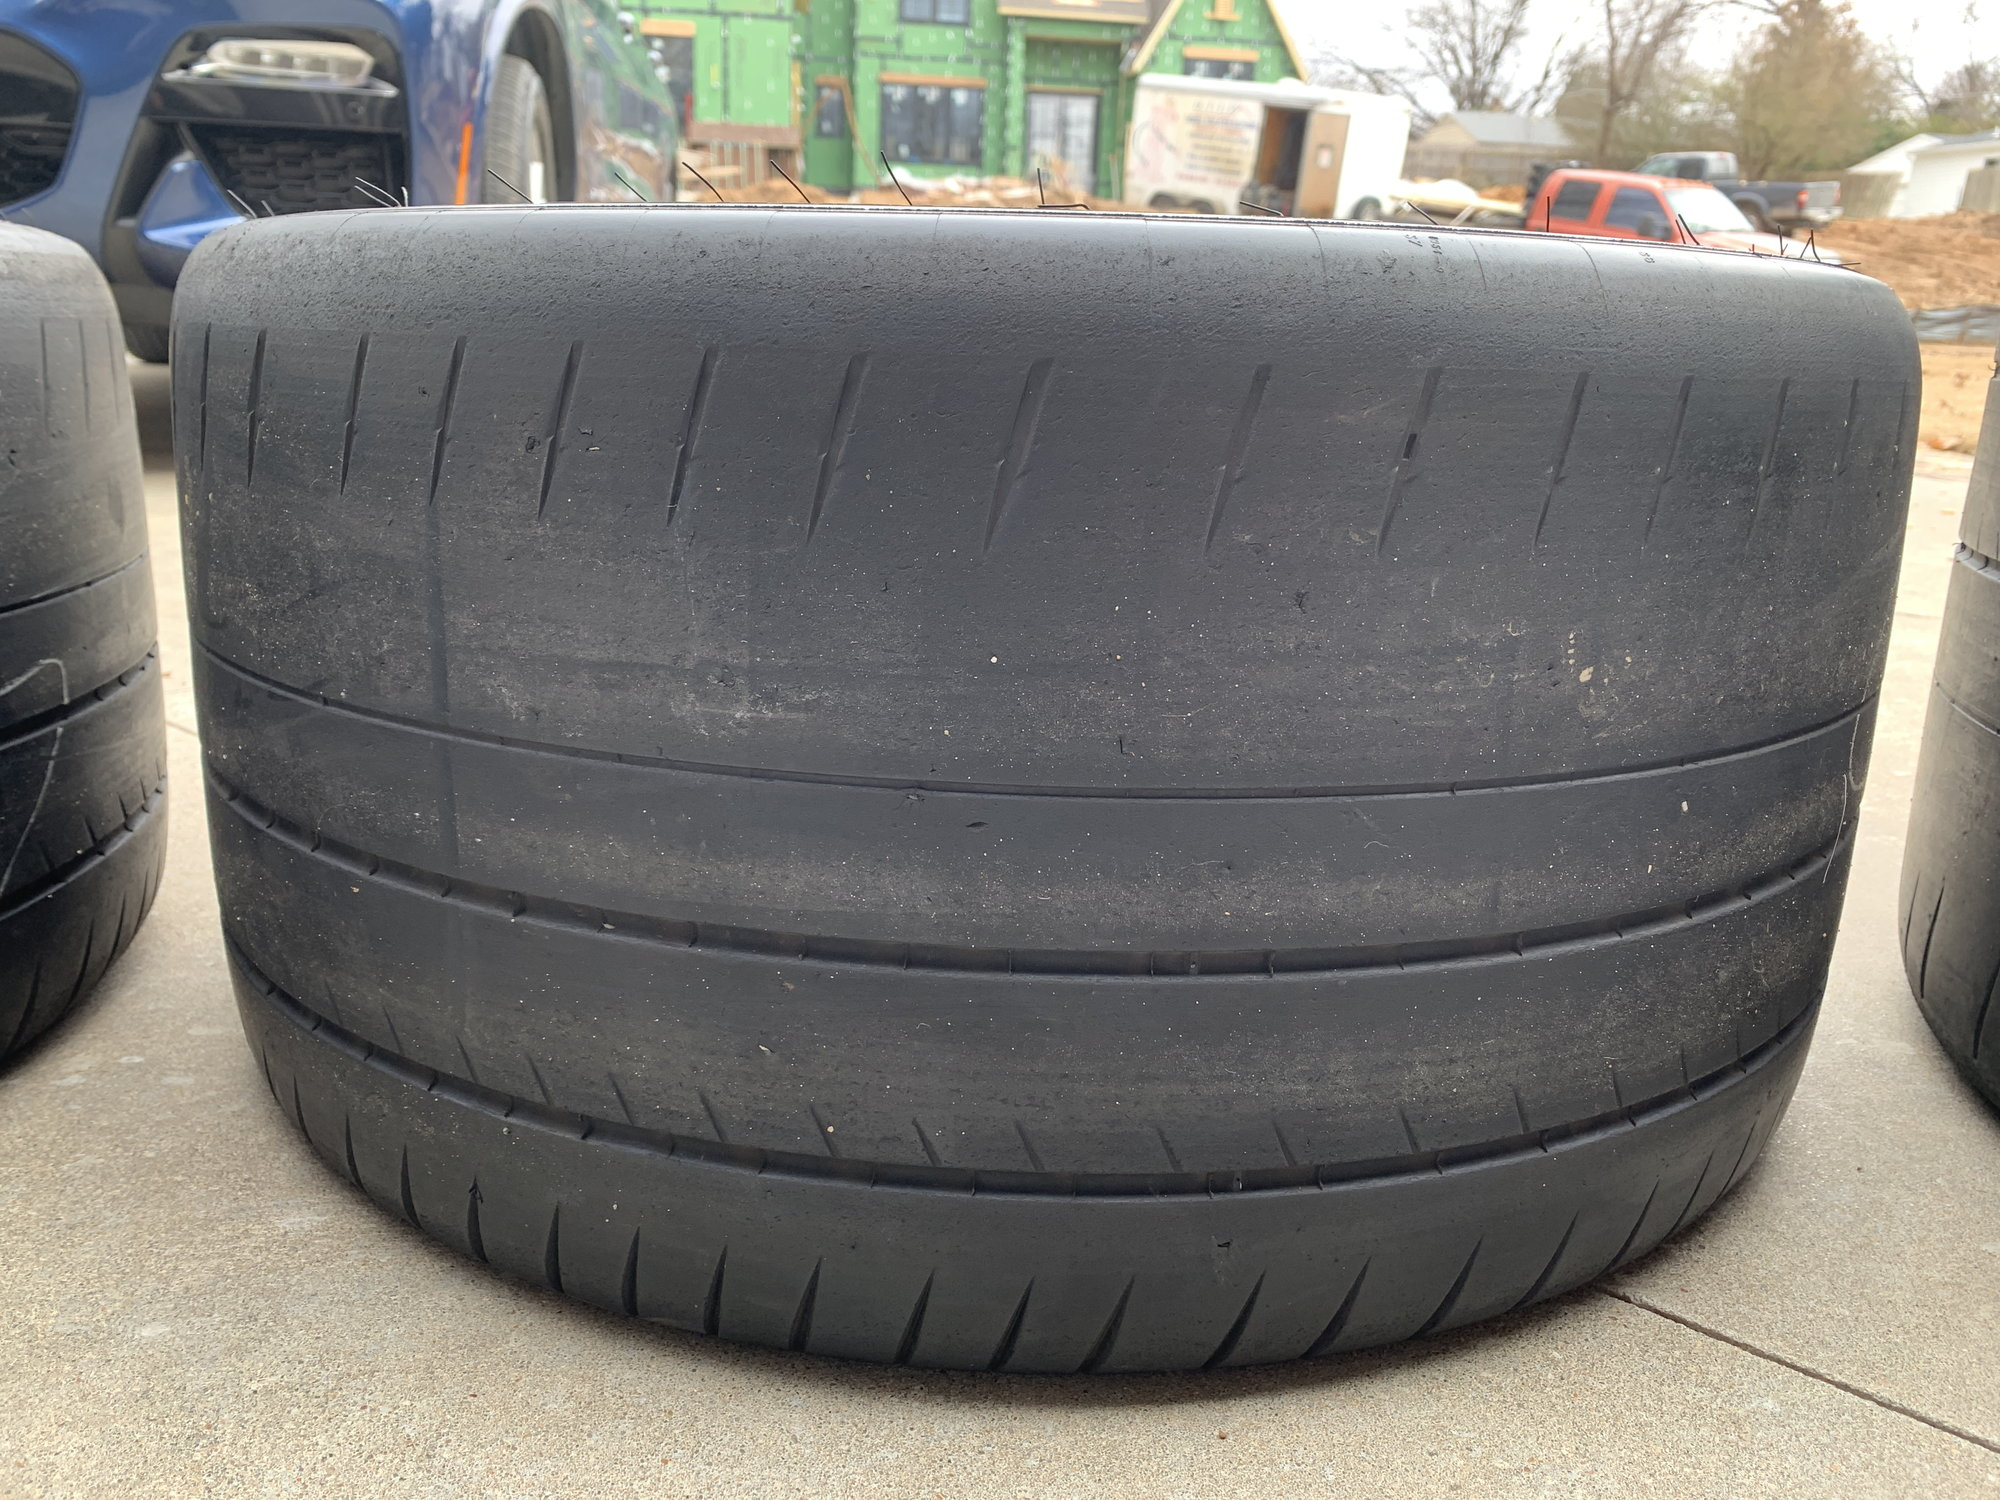 Discount Tire Tulsa >> FS (For Sale) 285/30/19 335/25/20 Michelin Pilot Sport Cup 2 - $750 Shipped - CorvetteForum ...